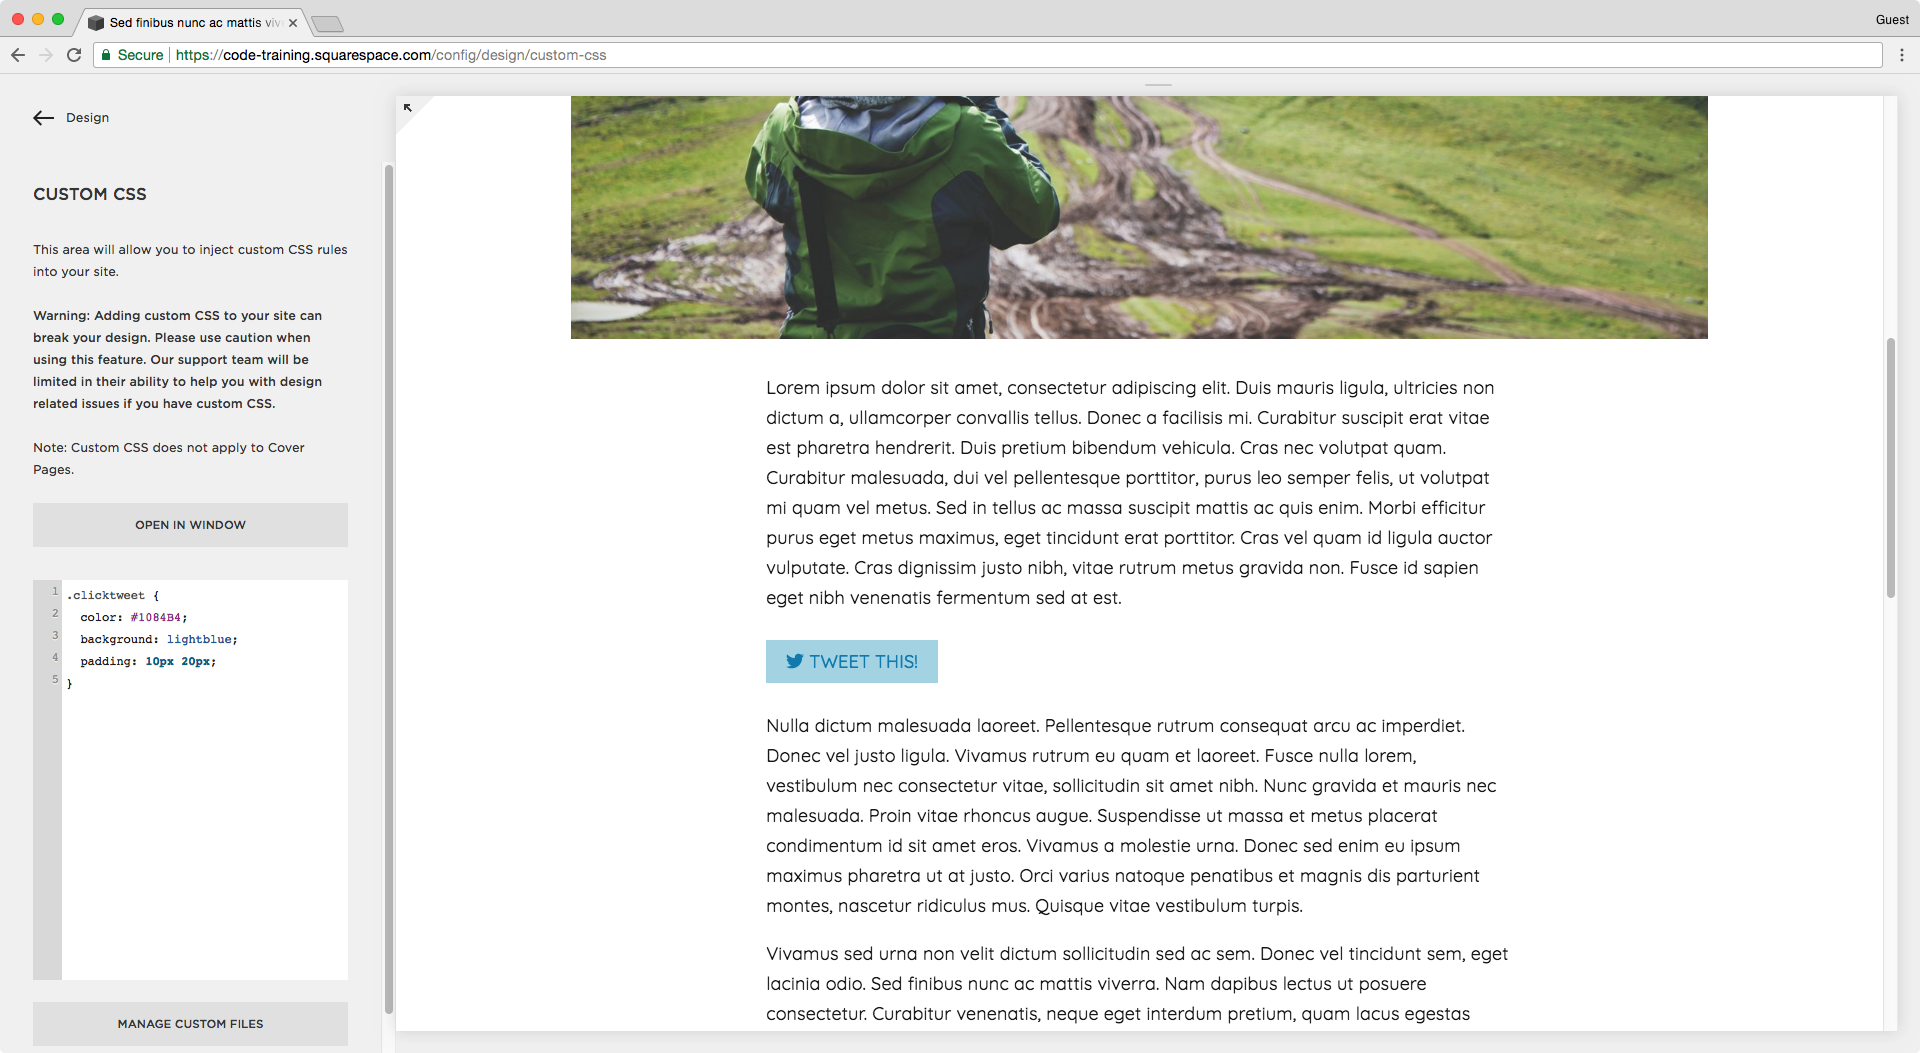 Adding a background color to the tweet this link in a blog post